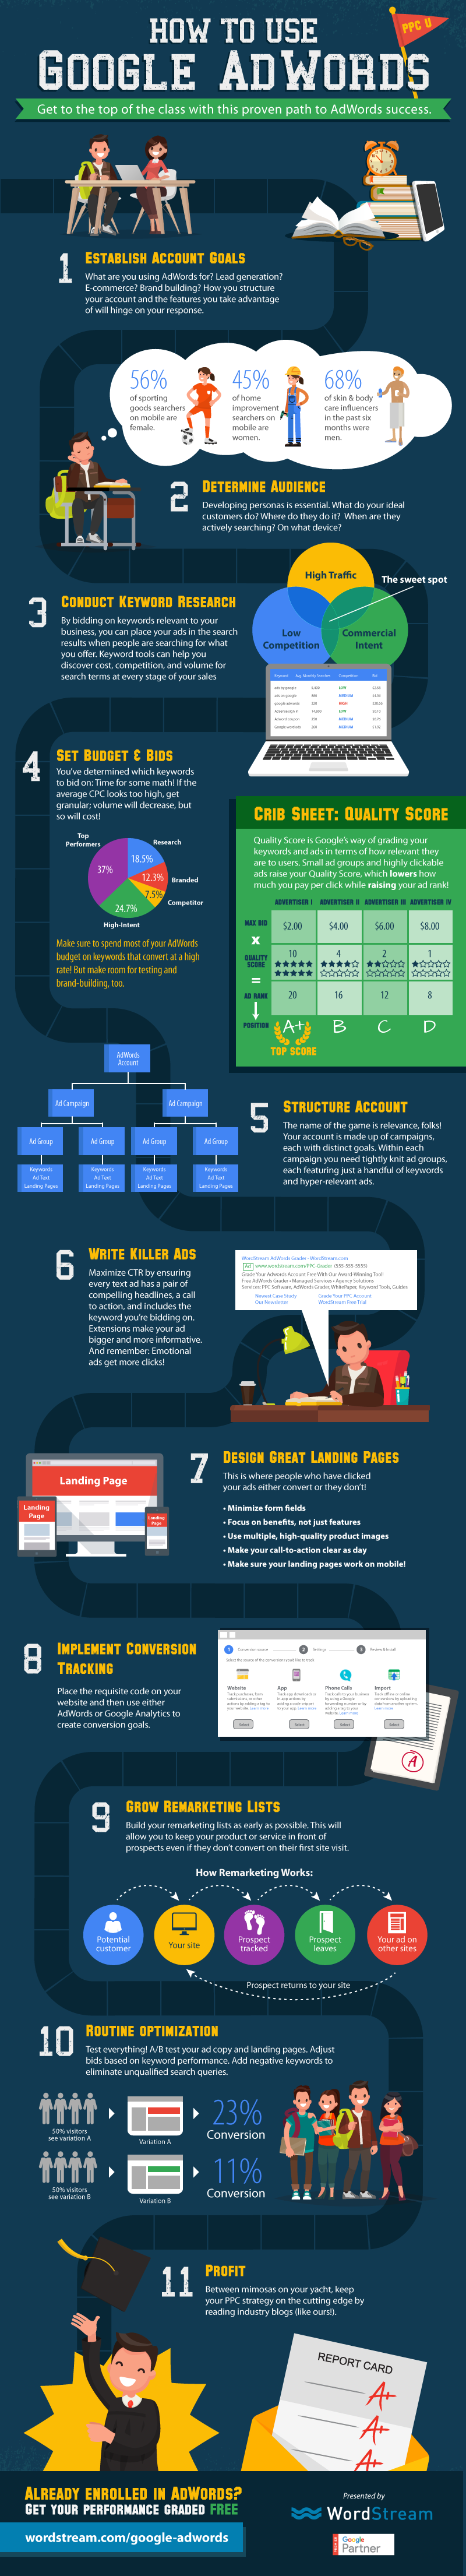 how to use google adwords infographic